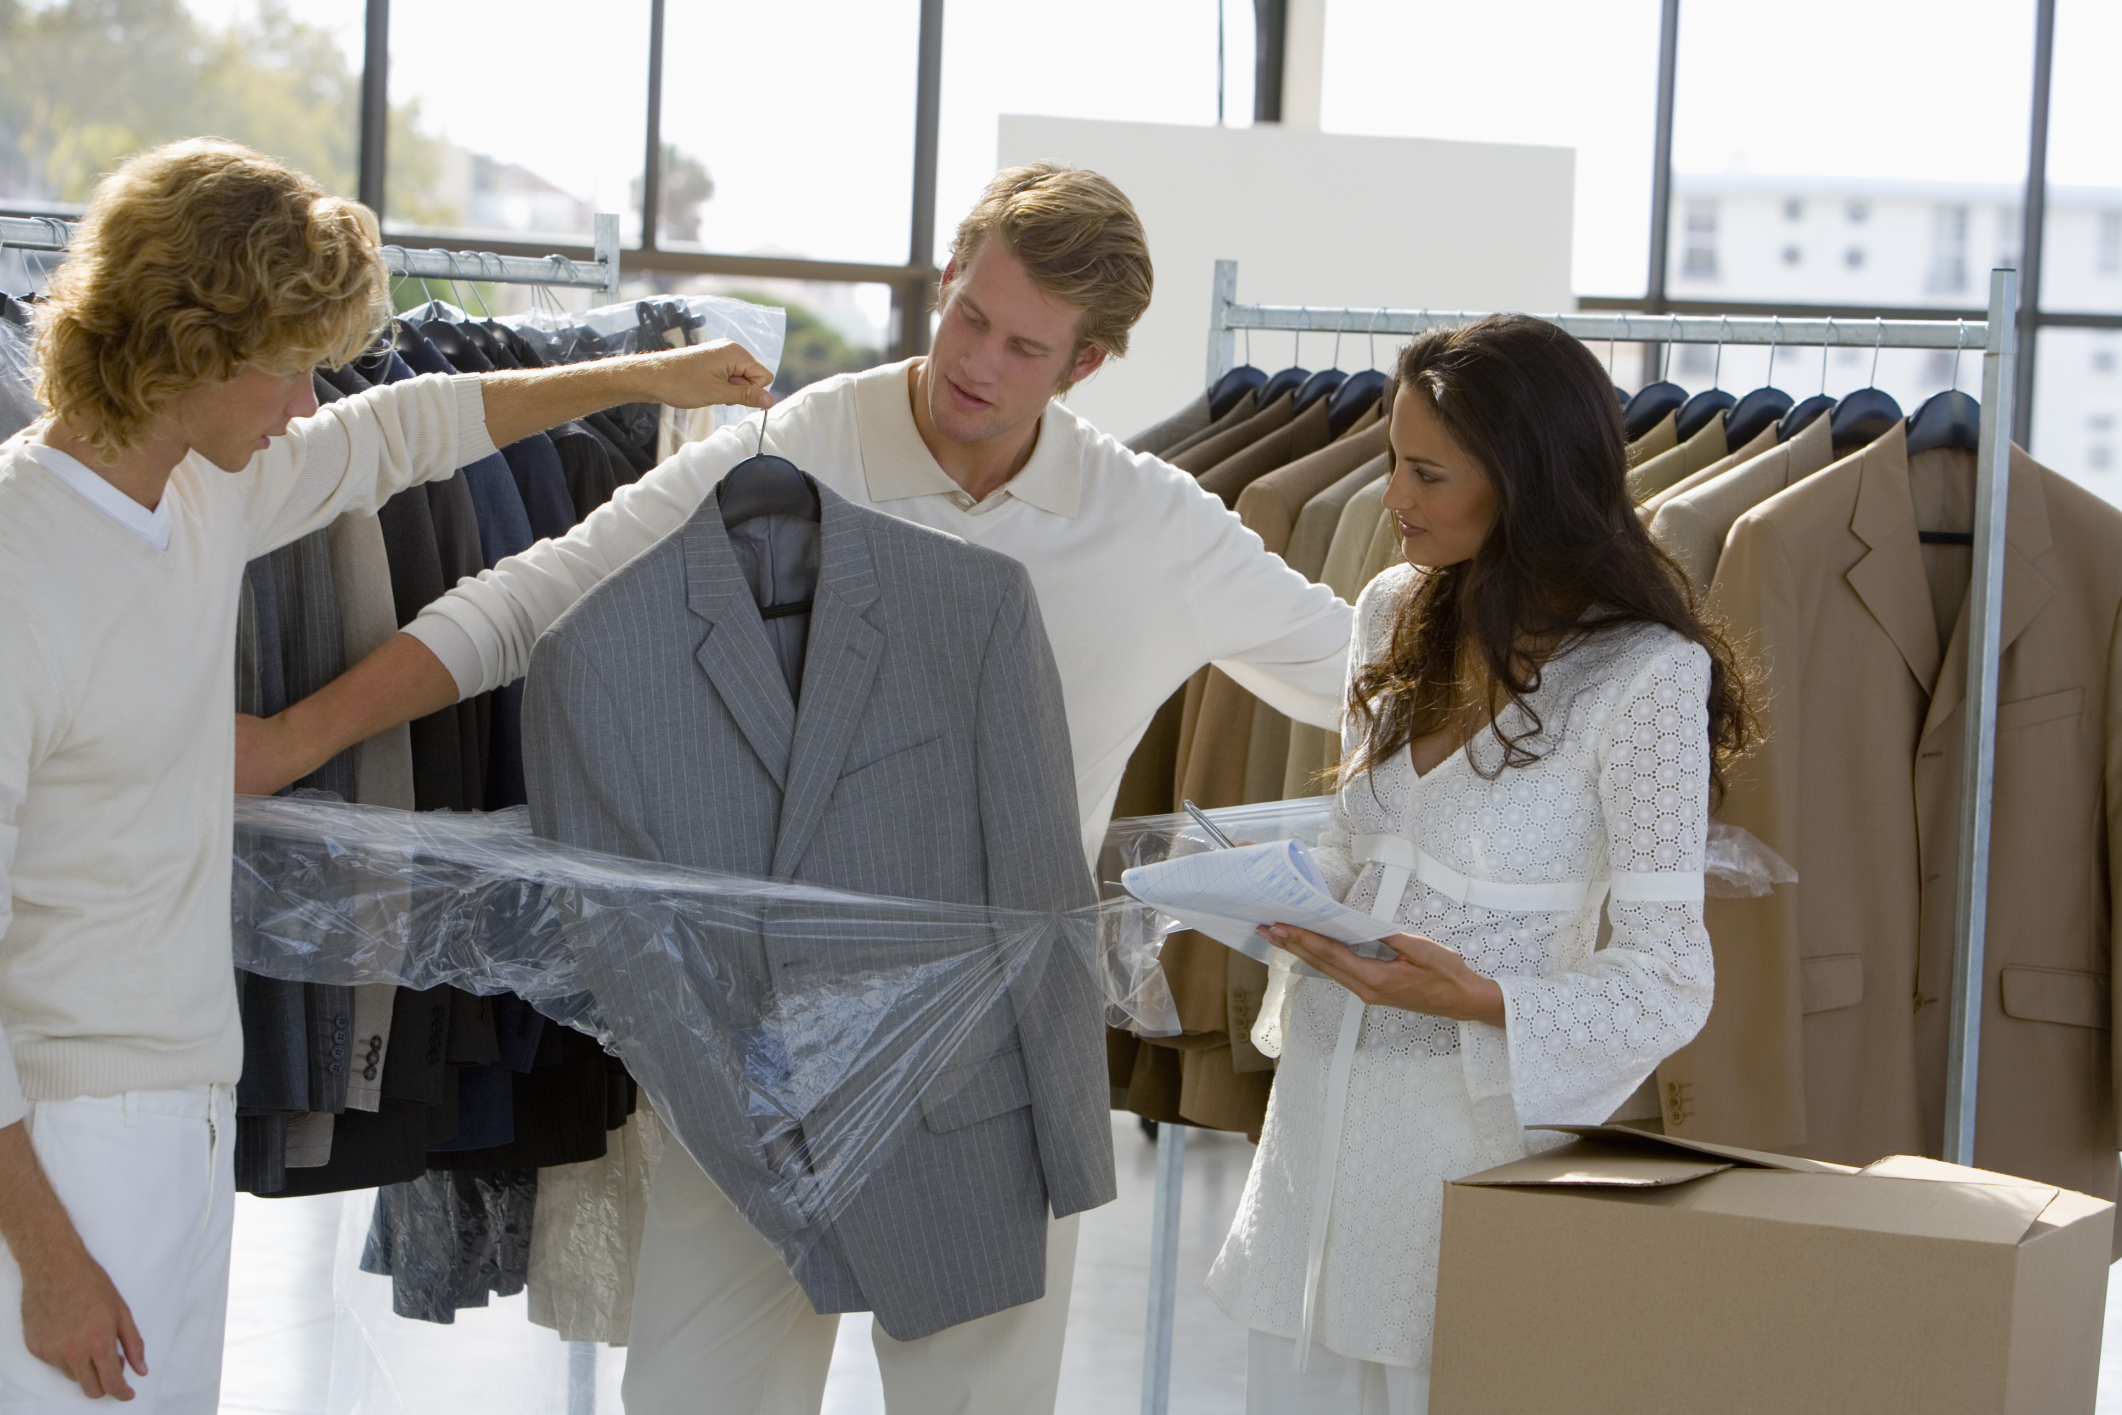 How to Pitch a Brilliant Idea - Harvard Business Review Sales pitch fashion buyers